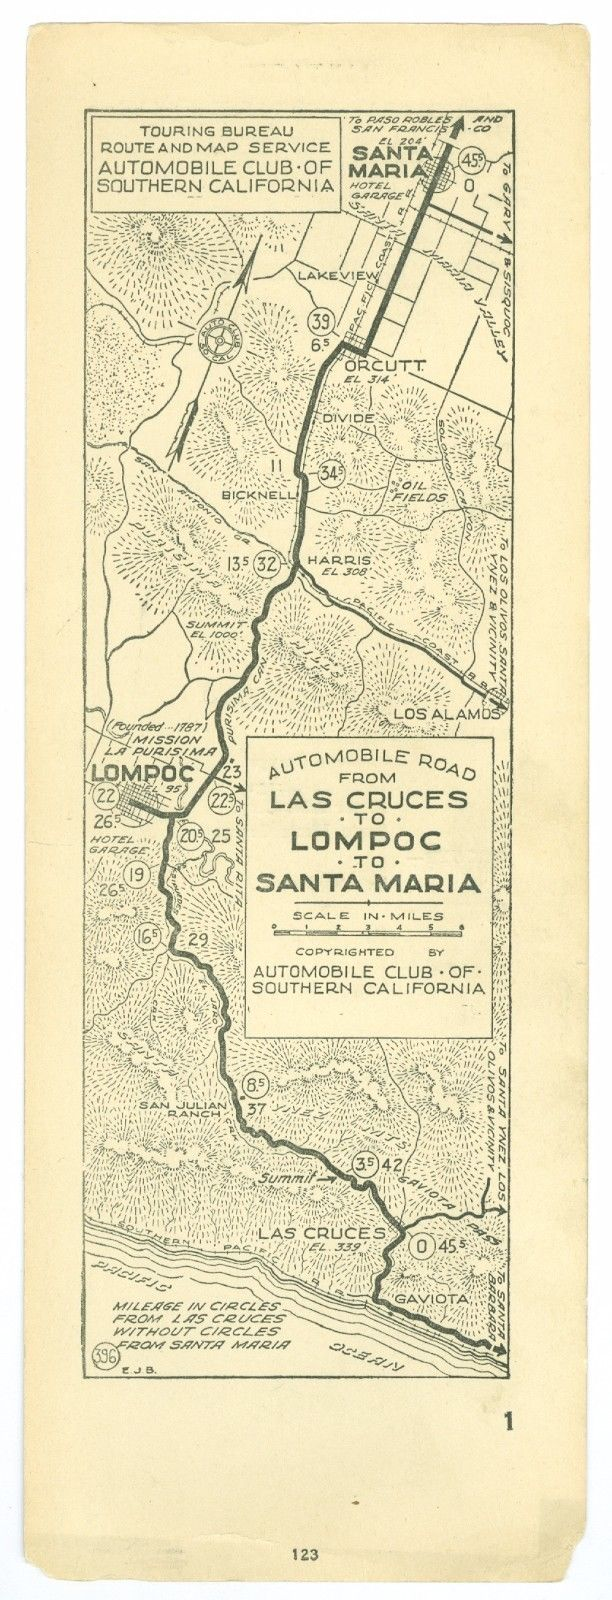 1920s Las Cruces, Lompoc, Santa Maria, AAA Automobile Club of Southern Calif Map